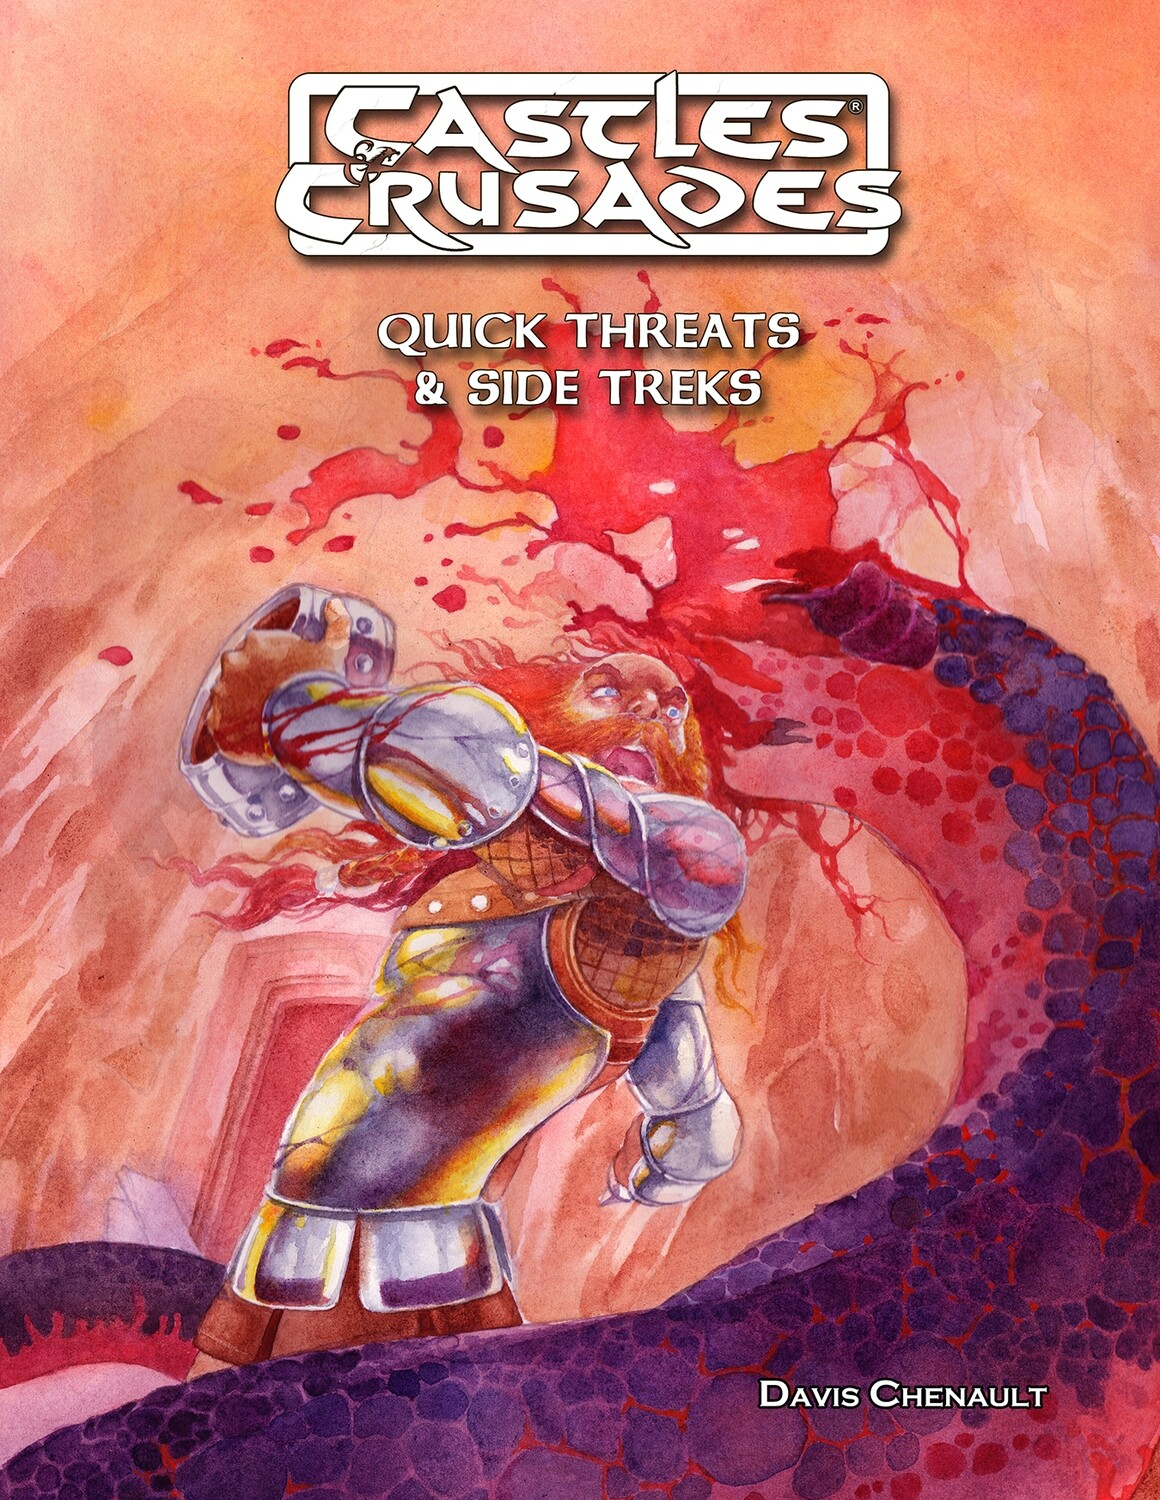 Castles & Crusades Quick Threats and Side Treks